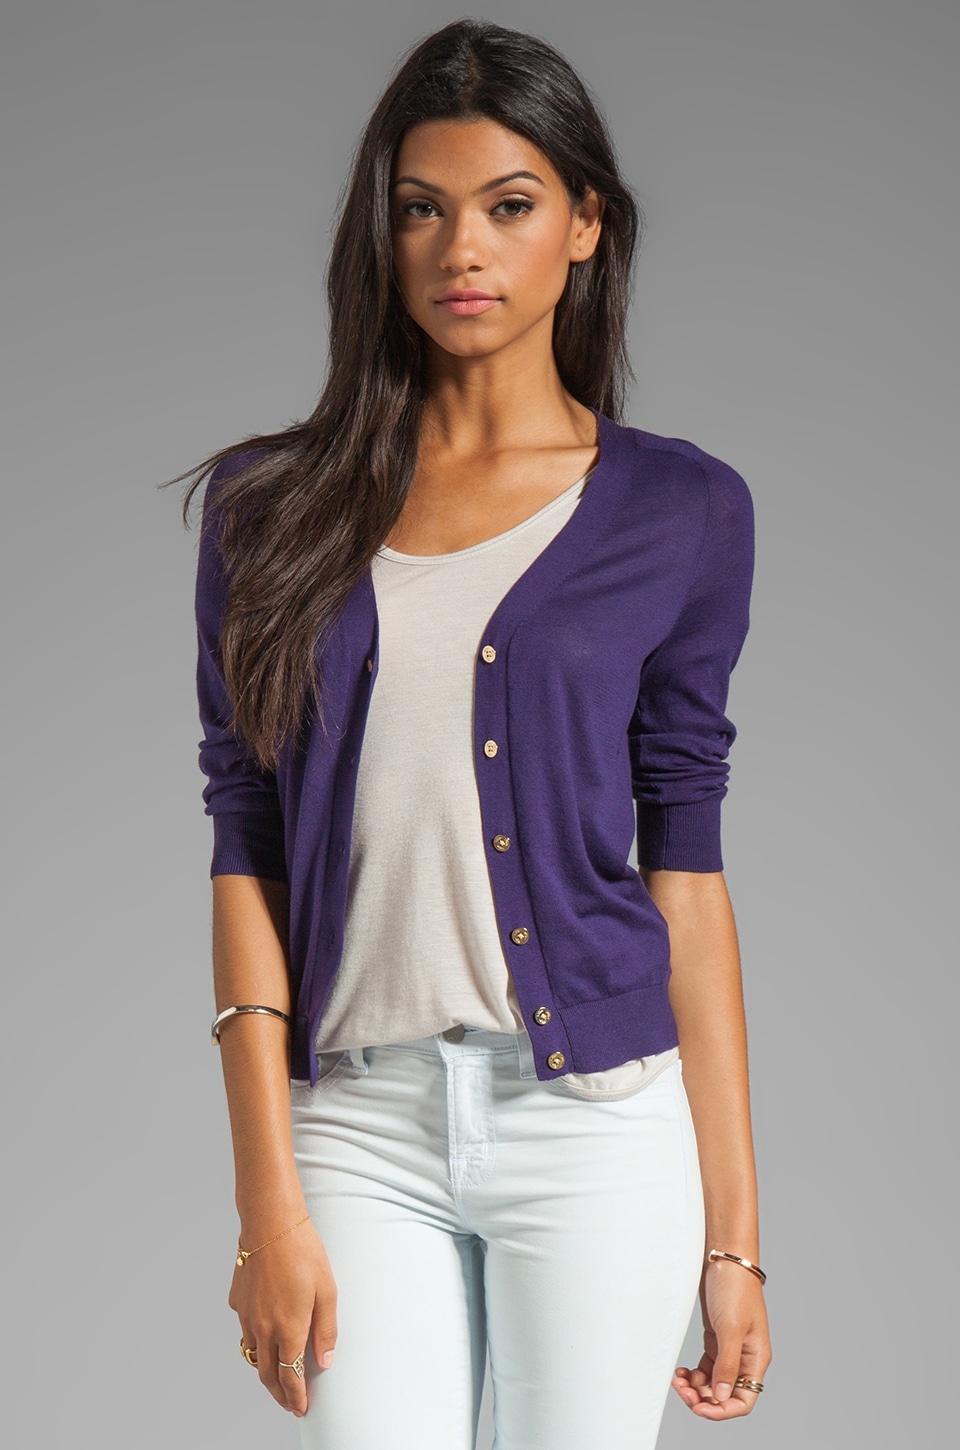 Trina Turk Fruition Cardigan in Black Plum